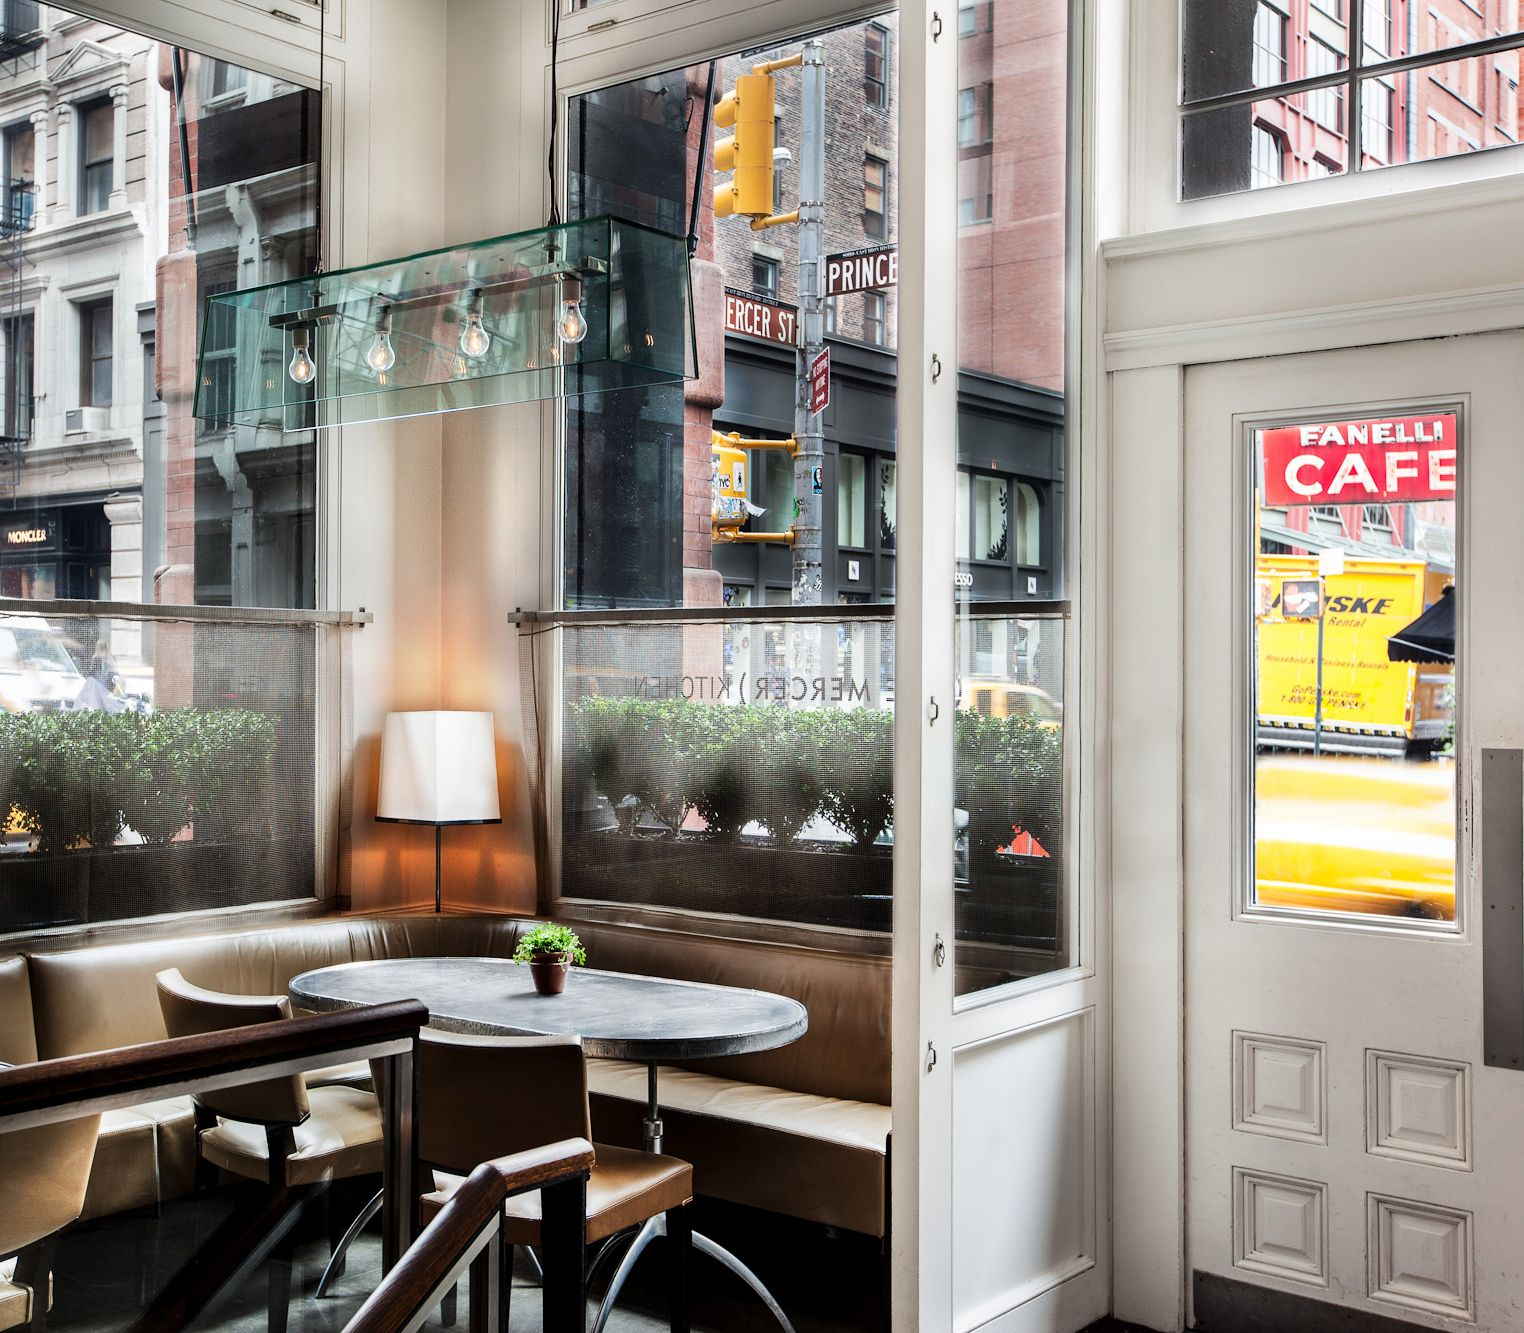 Mercer Kitchen New York: 5 Favorite Places To Eat In New York City